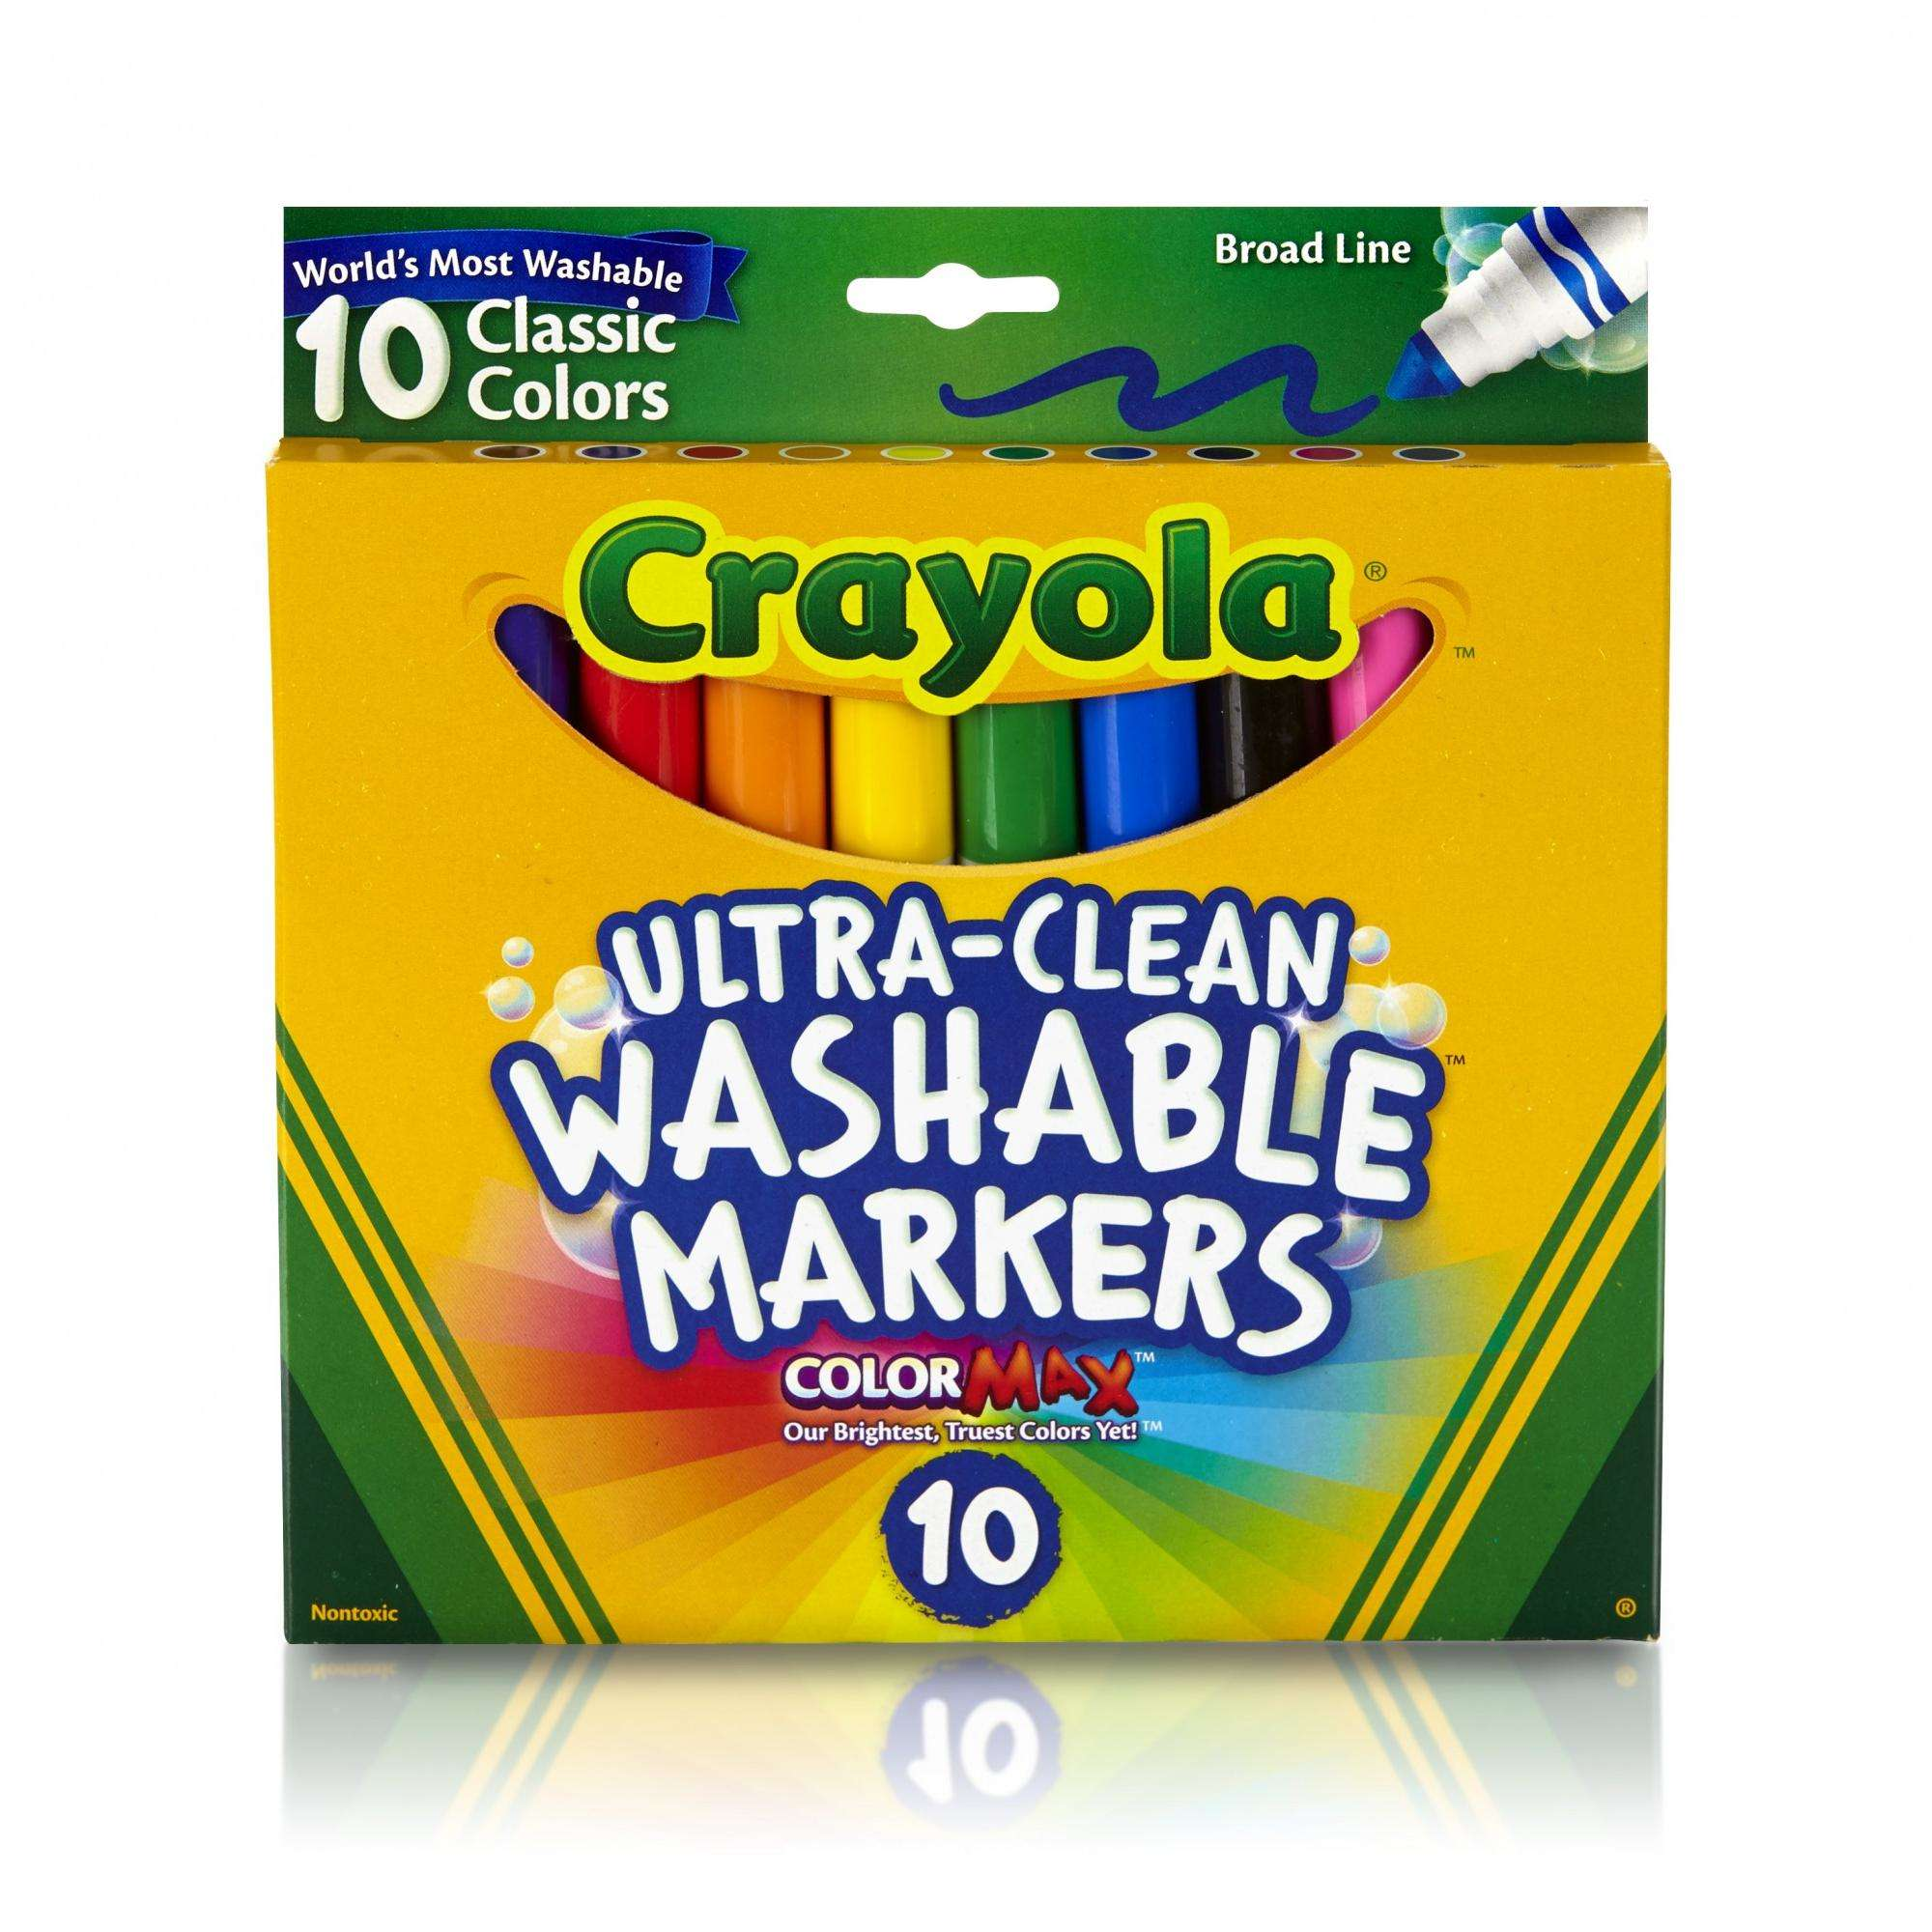 Crayola 10 Count Ultra-Clean Washable Broad Line Markers